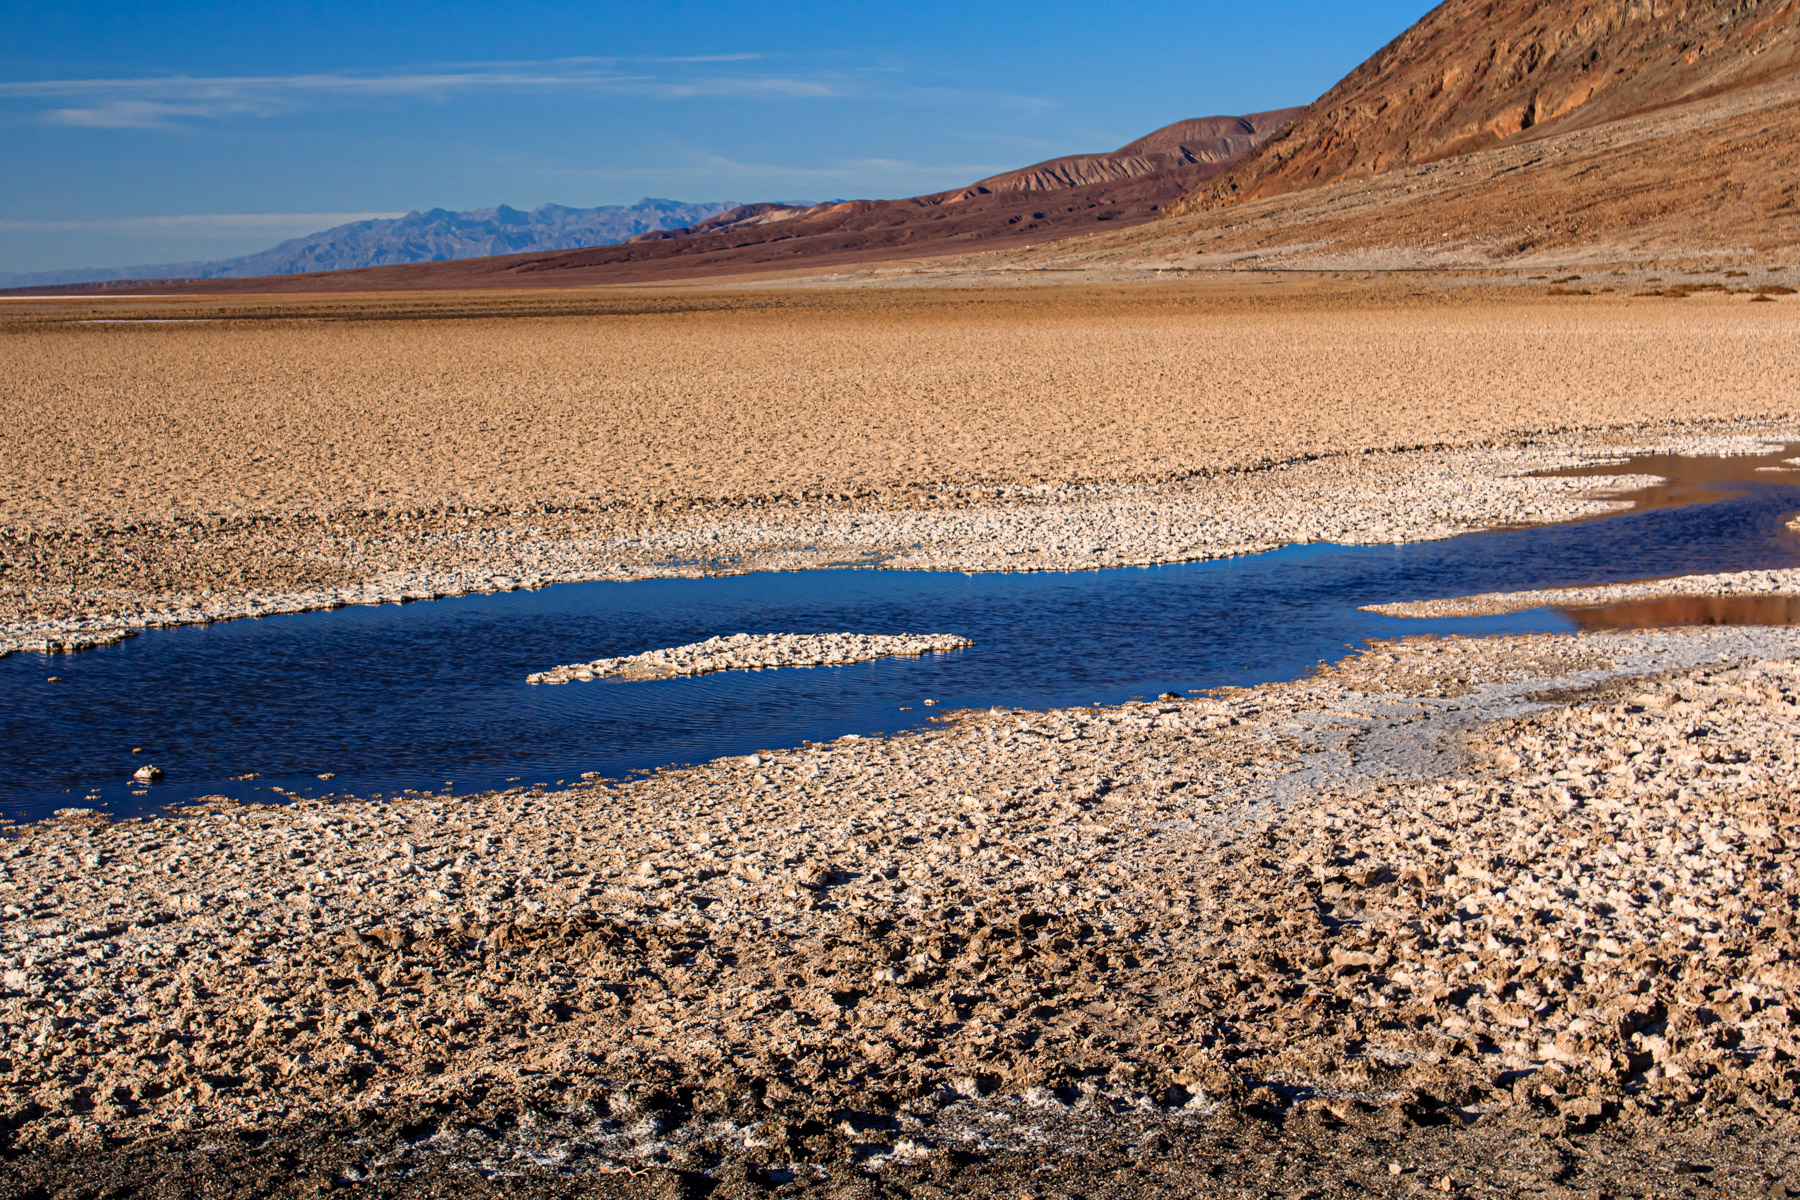 A rapidly-evaporating pond left by a recent rainfall at Badwater Basin—the lowest point in North America—at Death Valley National Park, California.